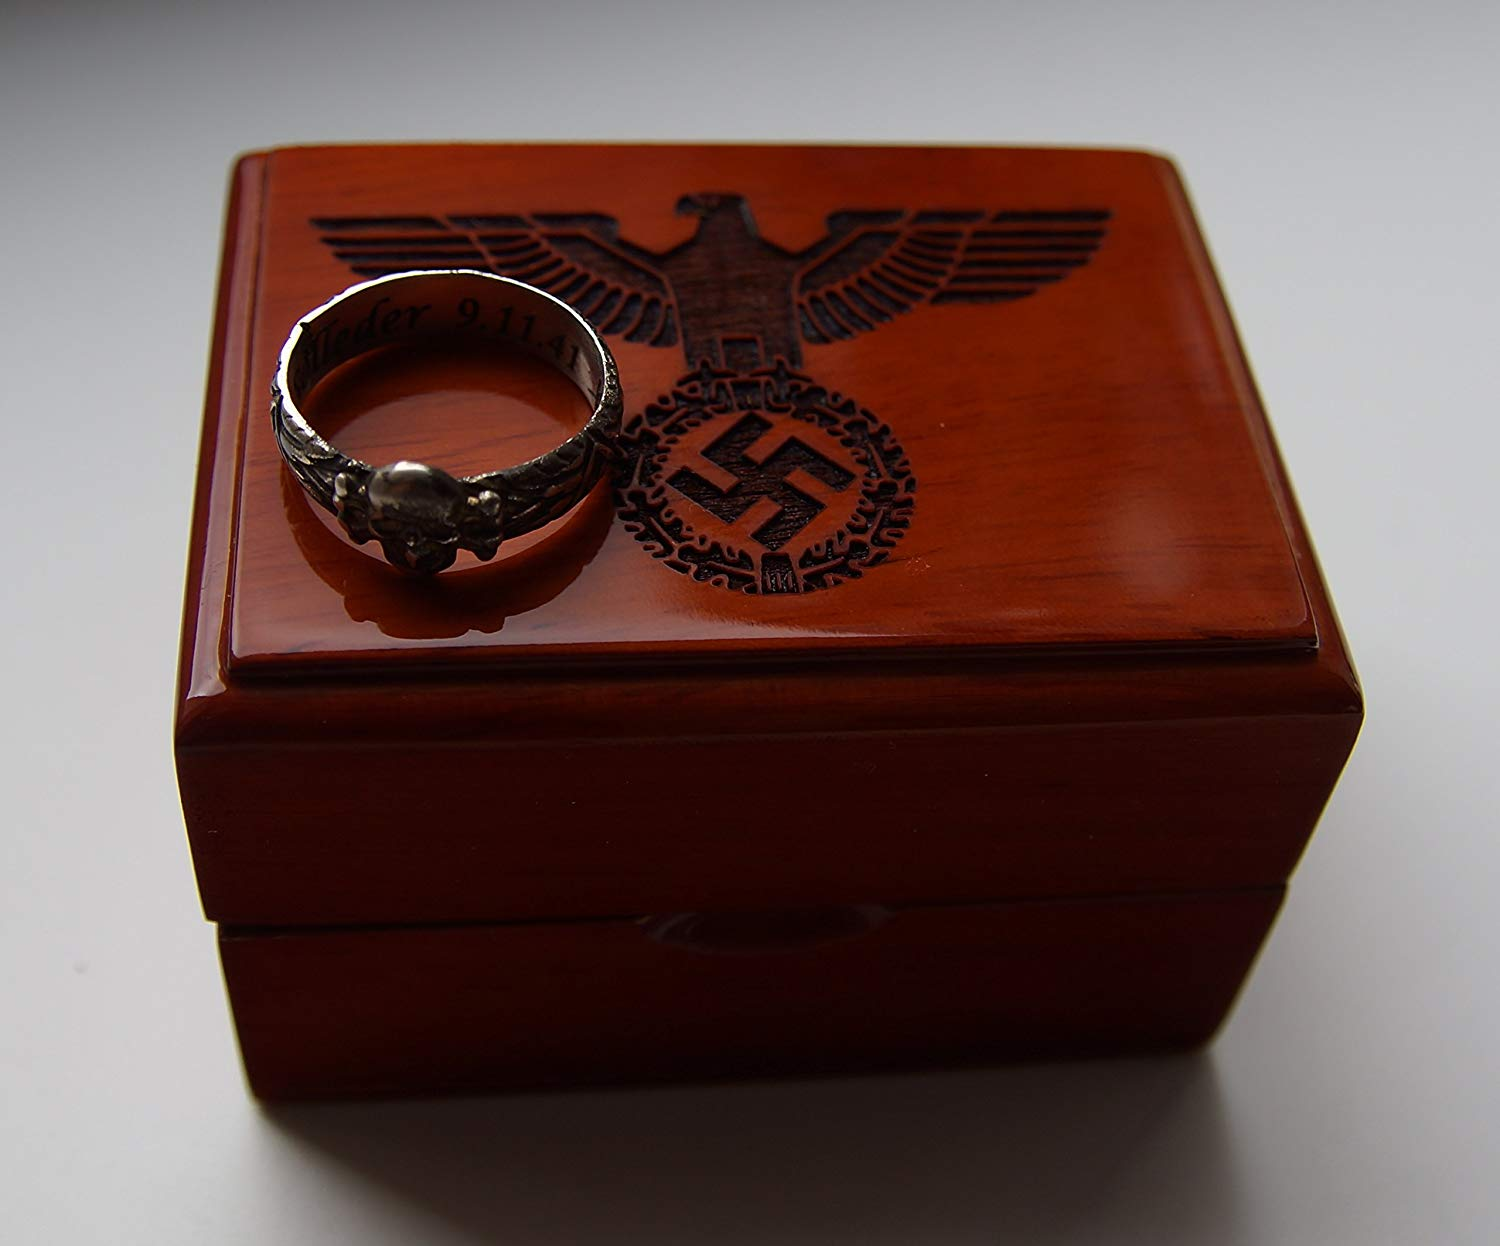 Amazon banned Confederate flags but Nazi gear is A-OK